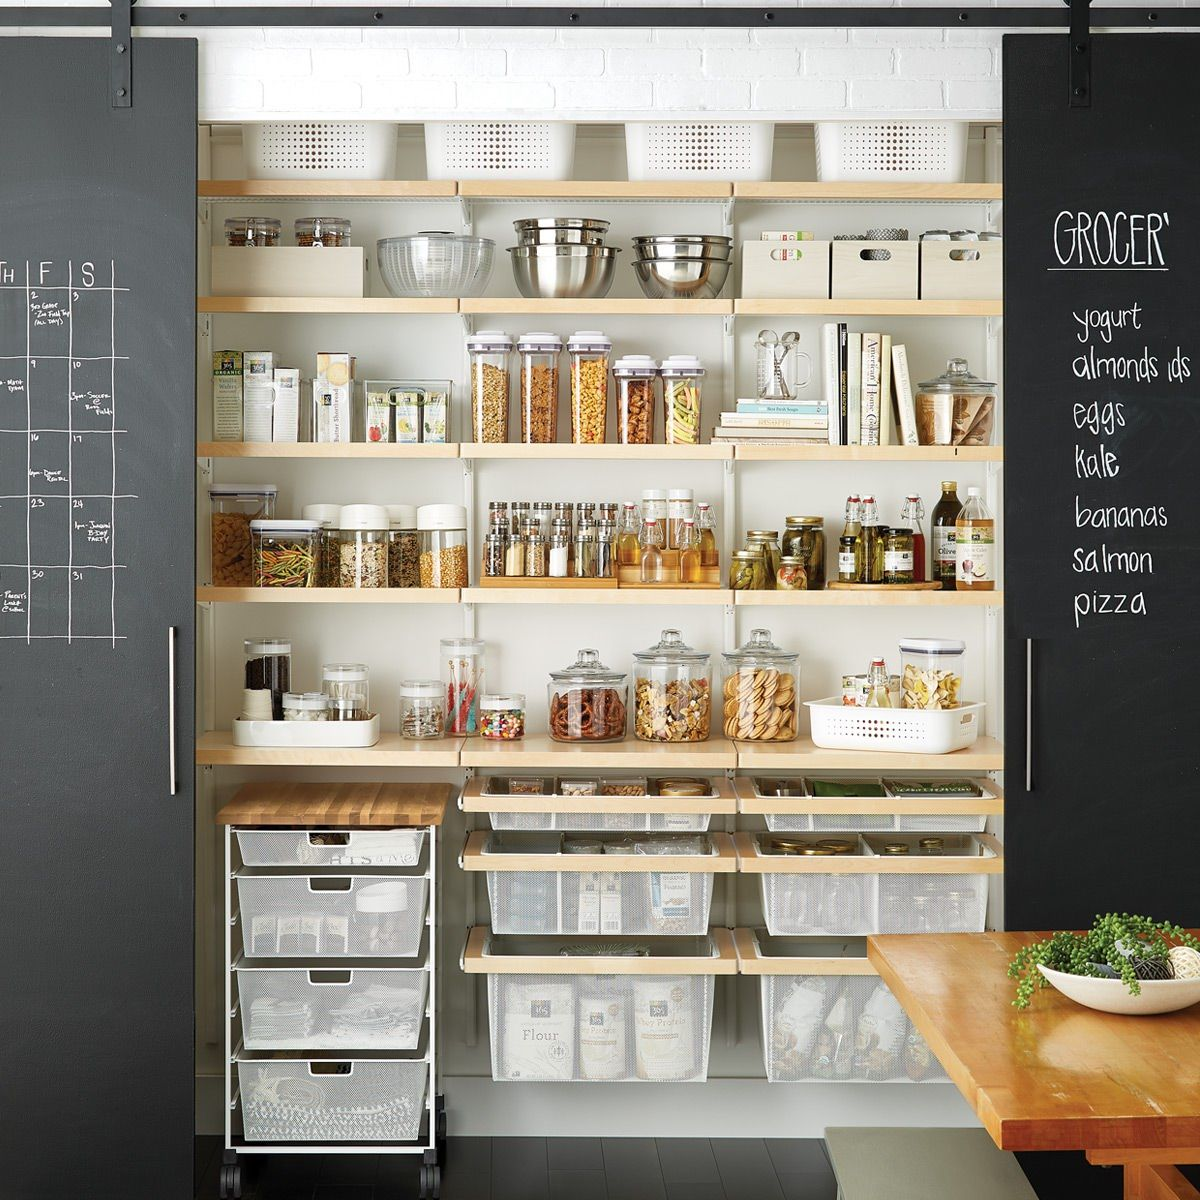 Messy Kitchen Pantry: There's So Much To Store In A Kitchen Or Pantry! Here's